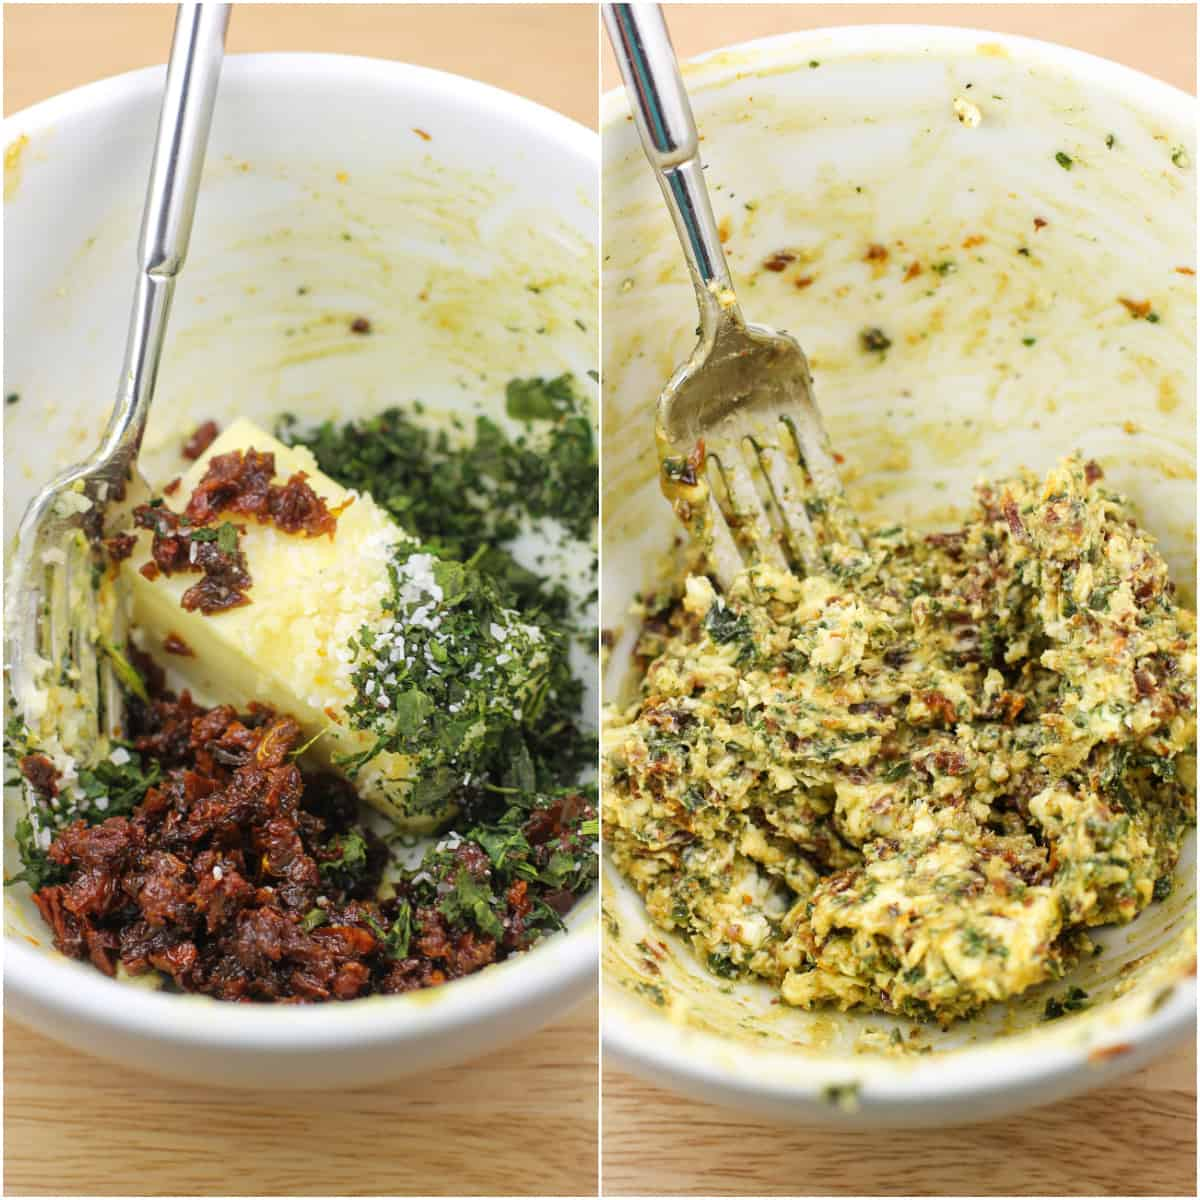 collage of 2 photos: left, ingredients in white bowl with fork; right, ingredients combined